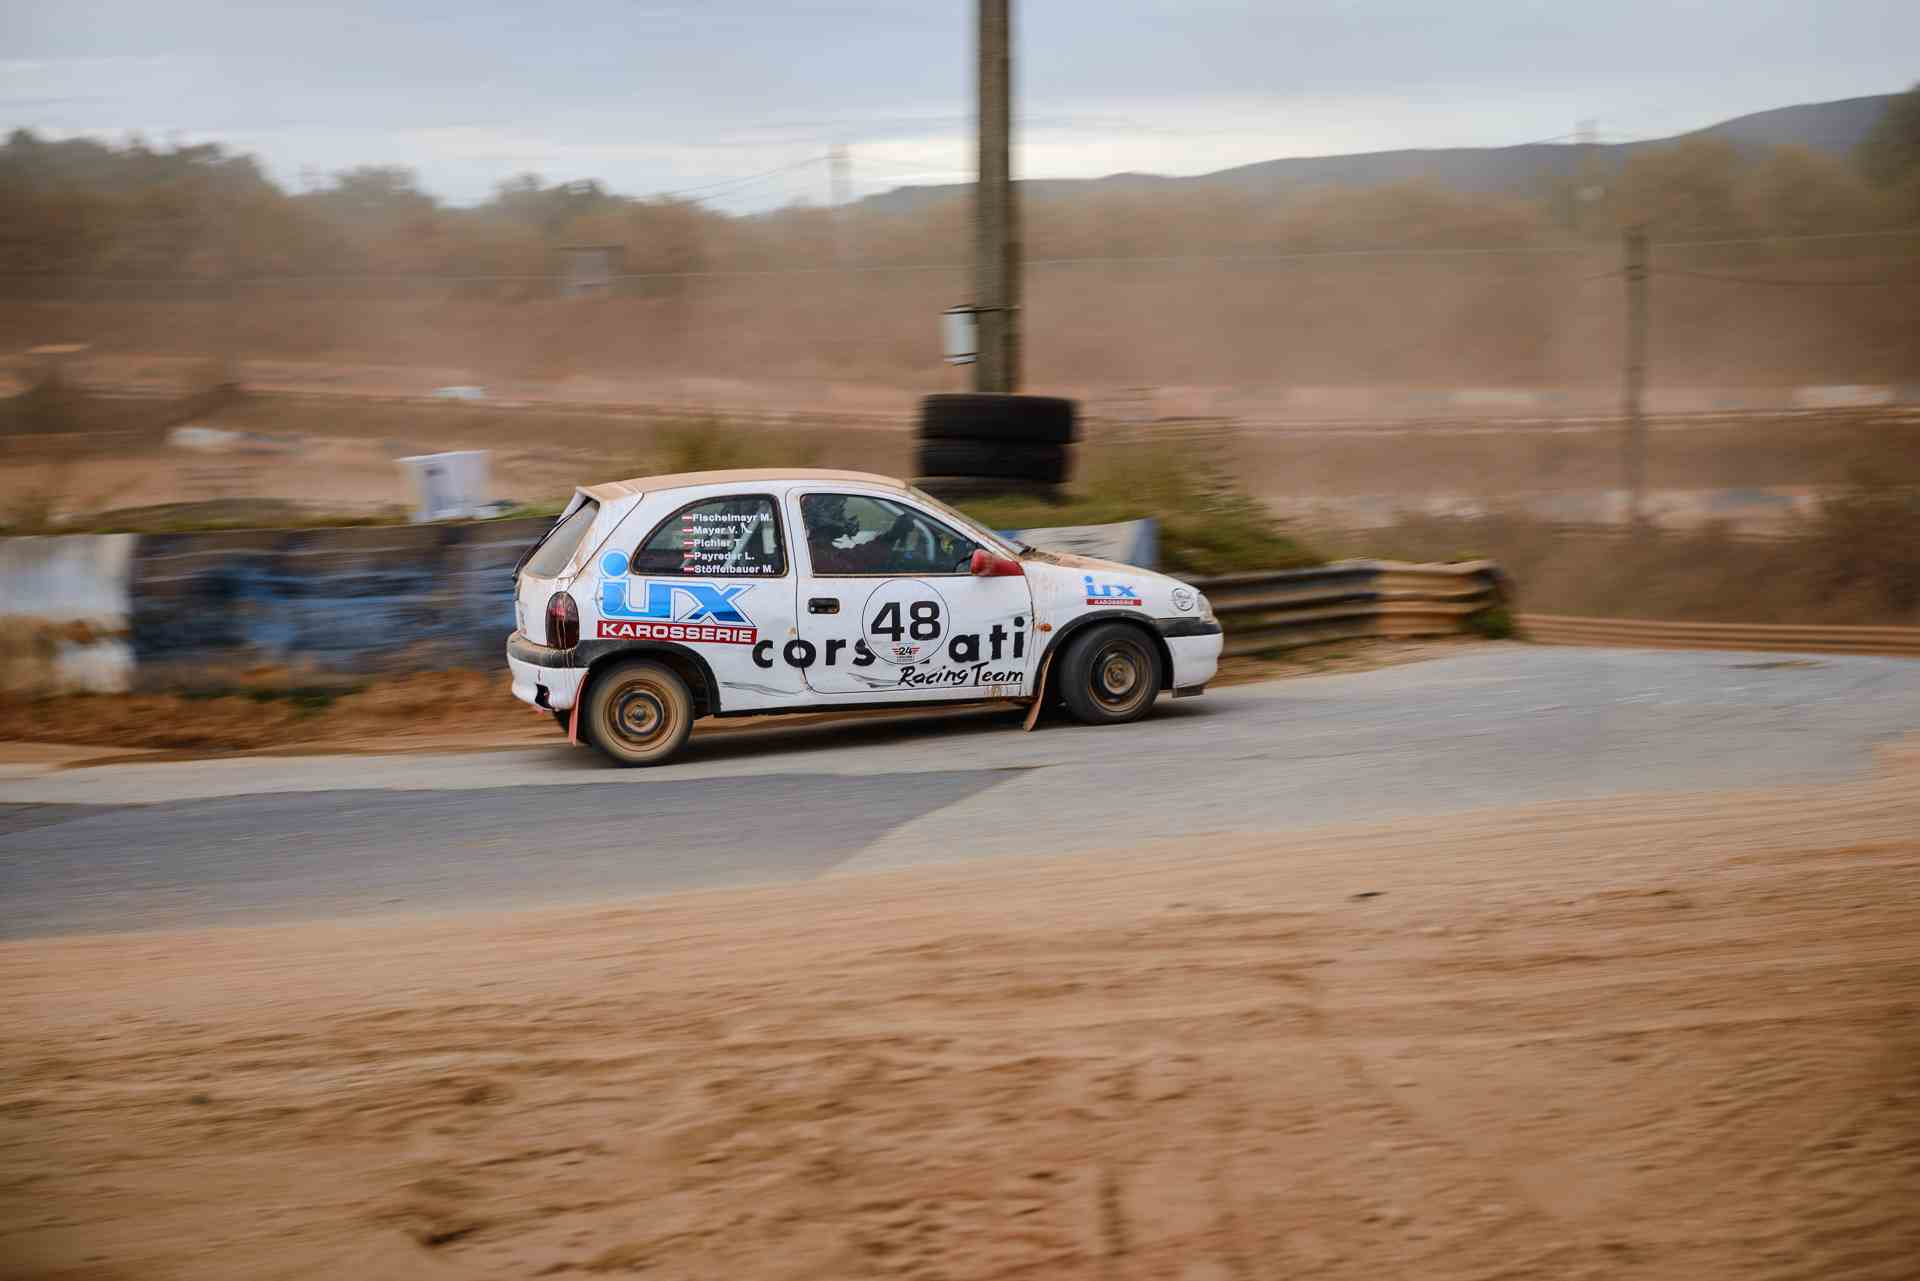 Corsarati Racing Team